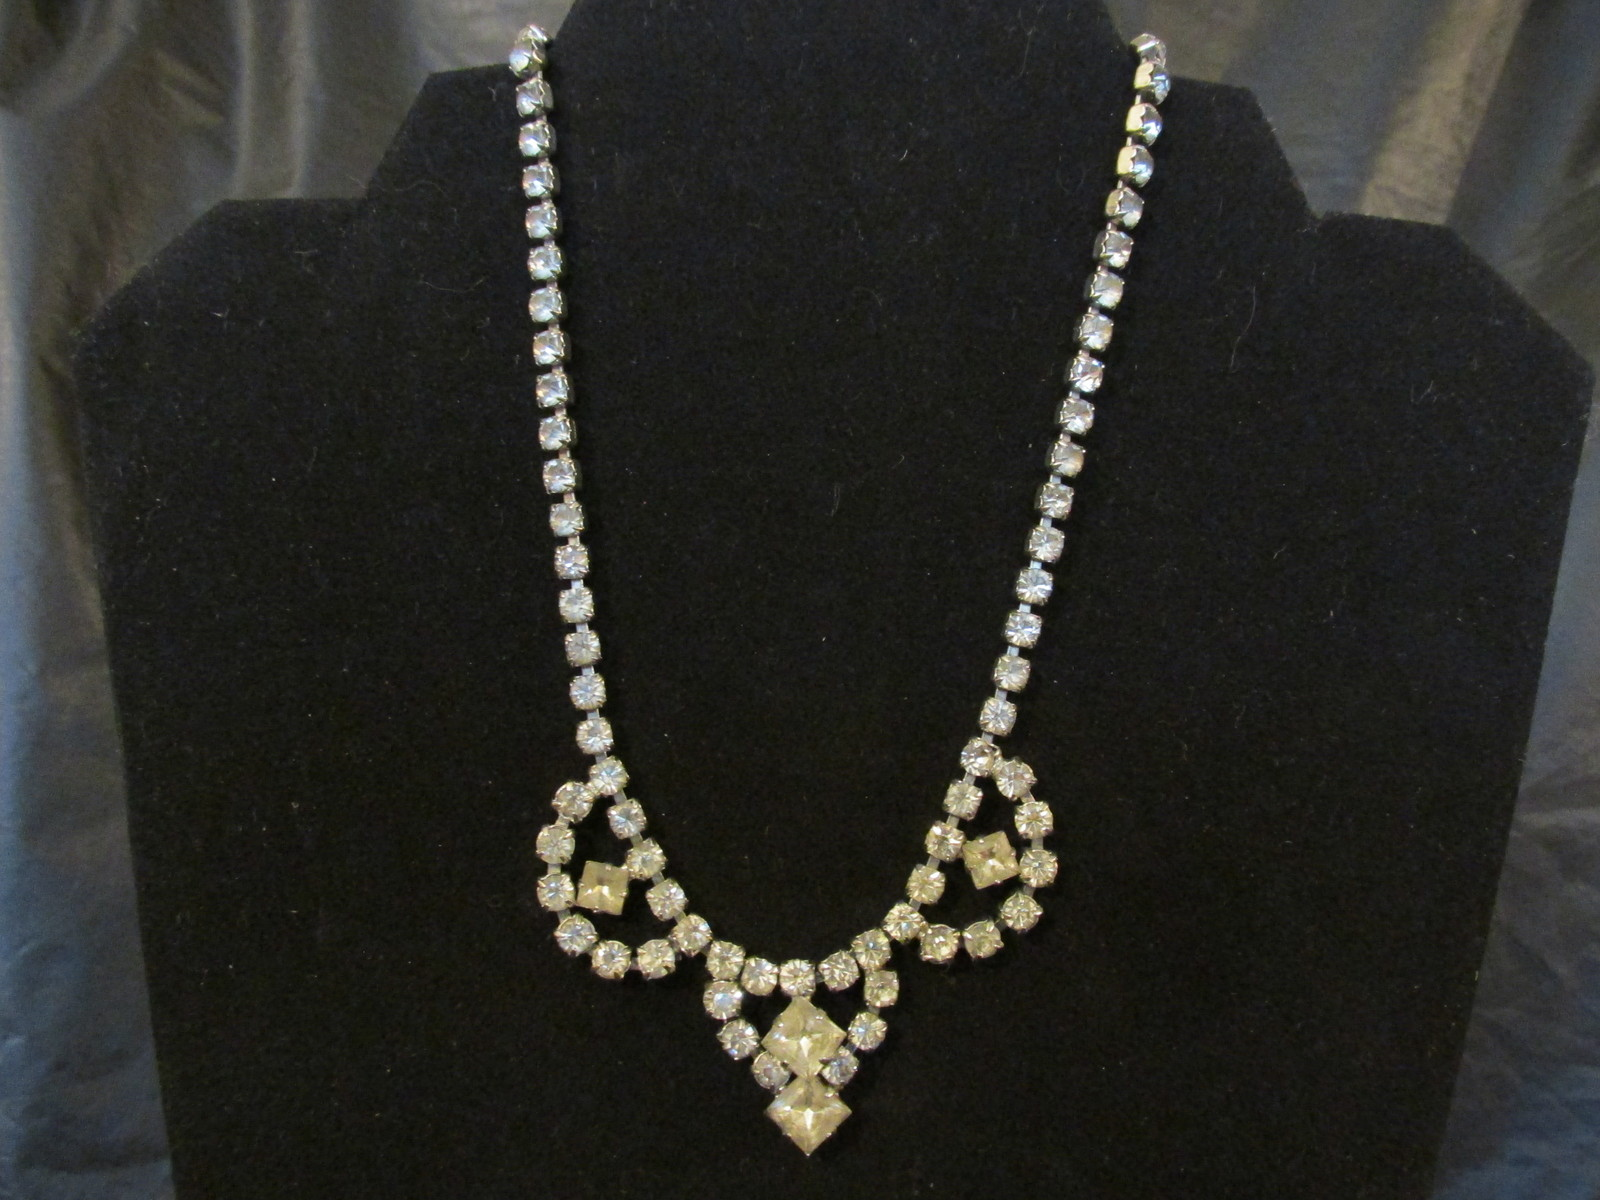 Vintage Clear Prong Set Rhinestone Swag Necklace - 1940s / 1950s